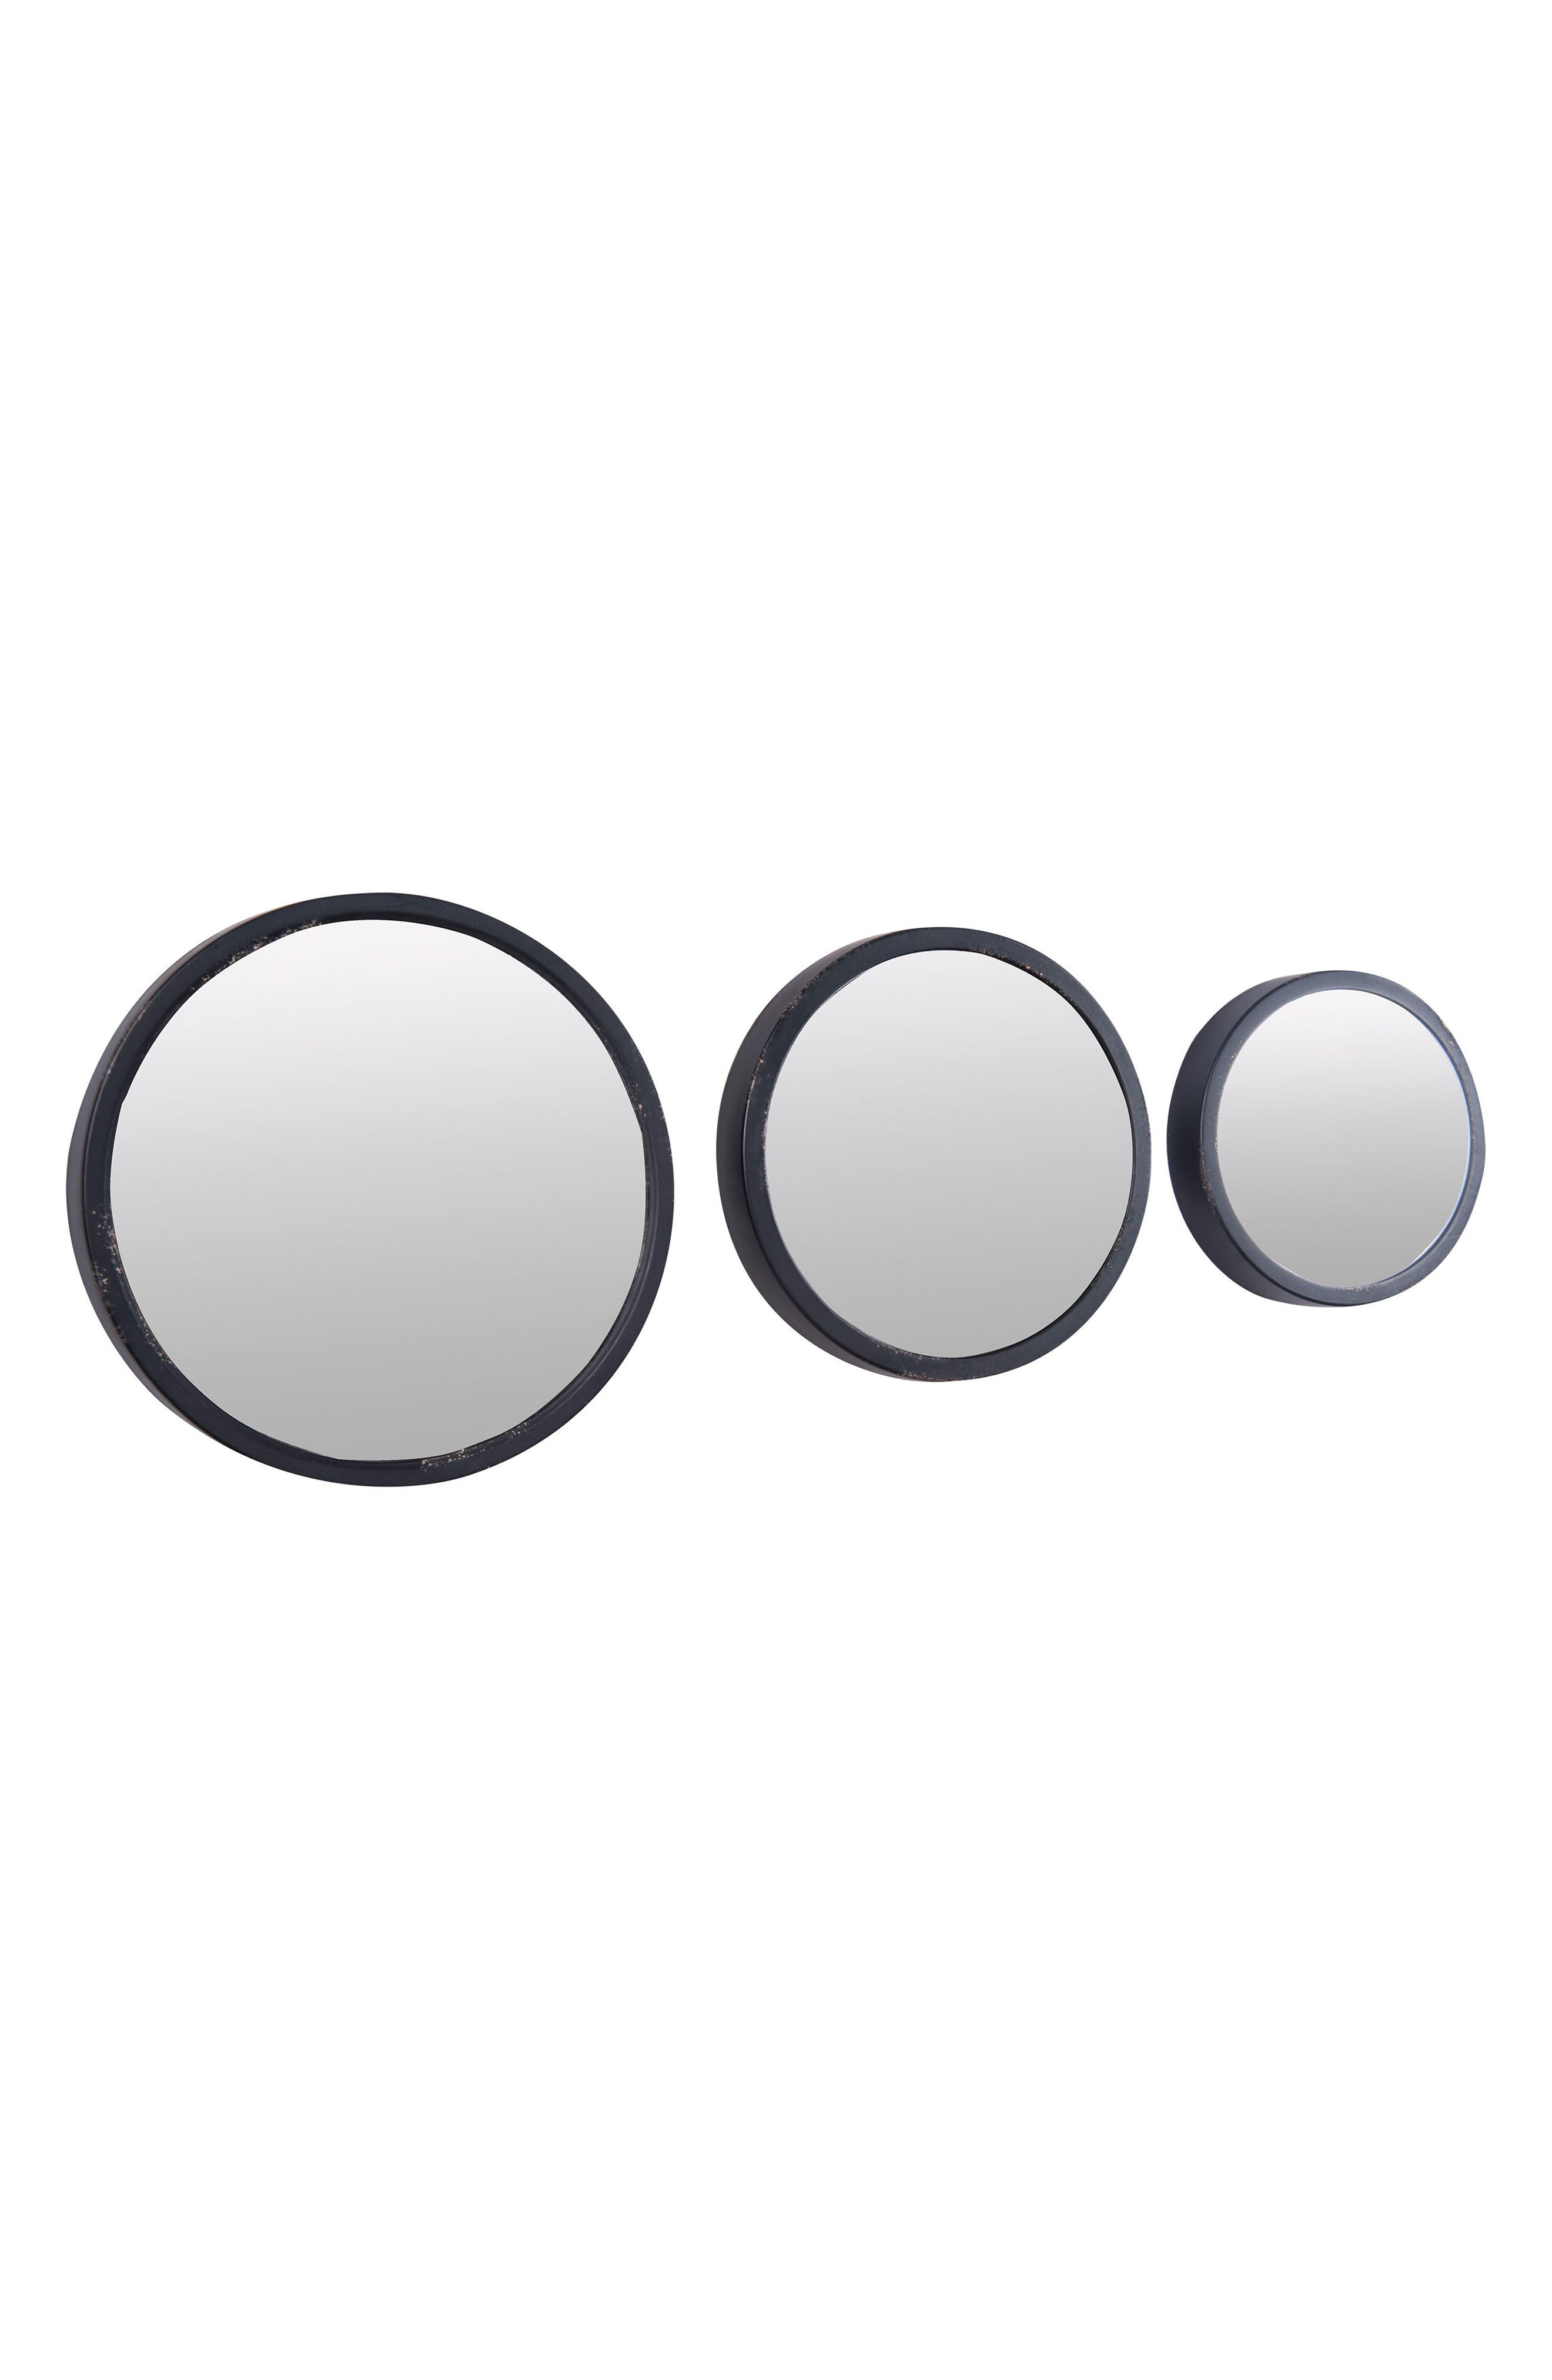 Set of 3 Round Mirrors,                         Main,                         color, 040